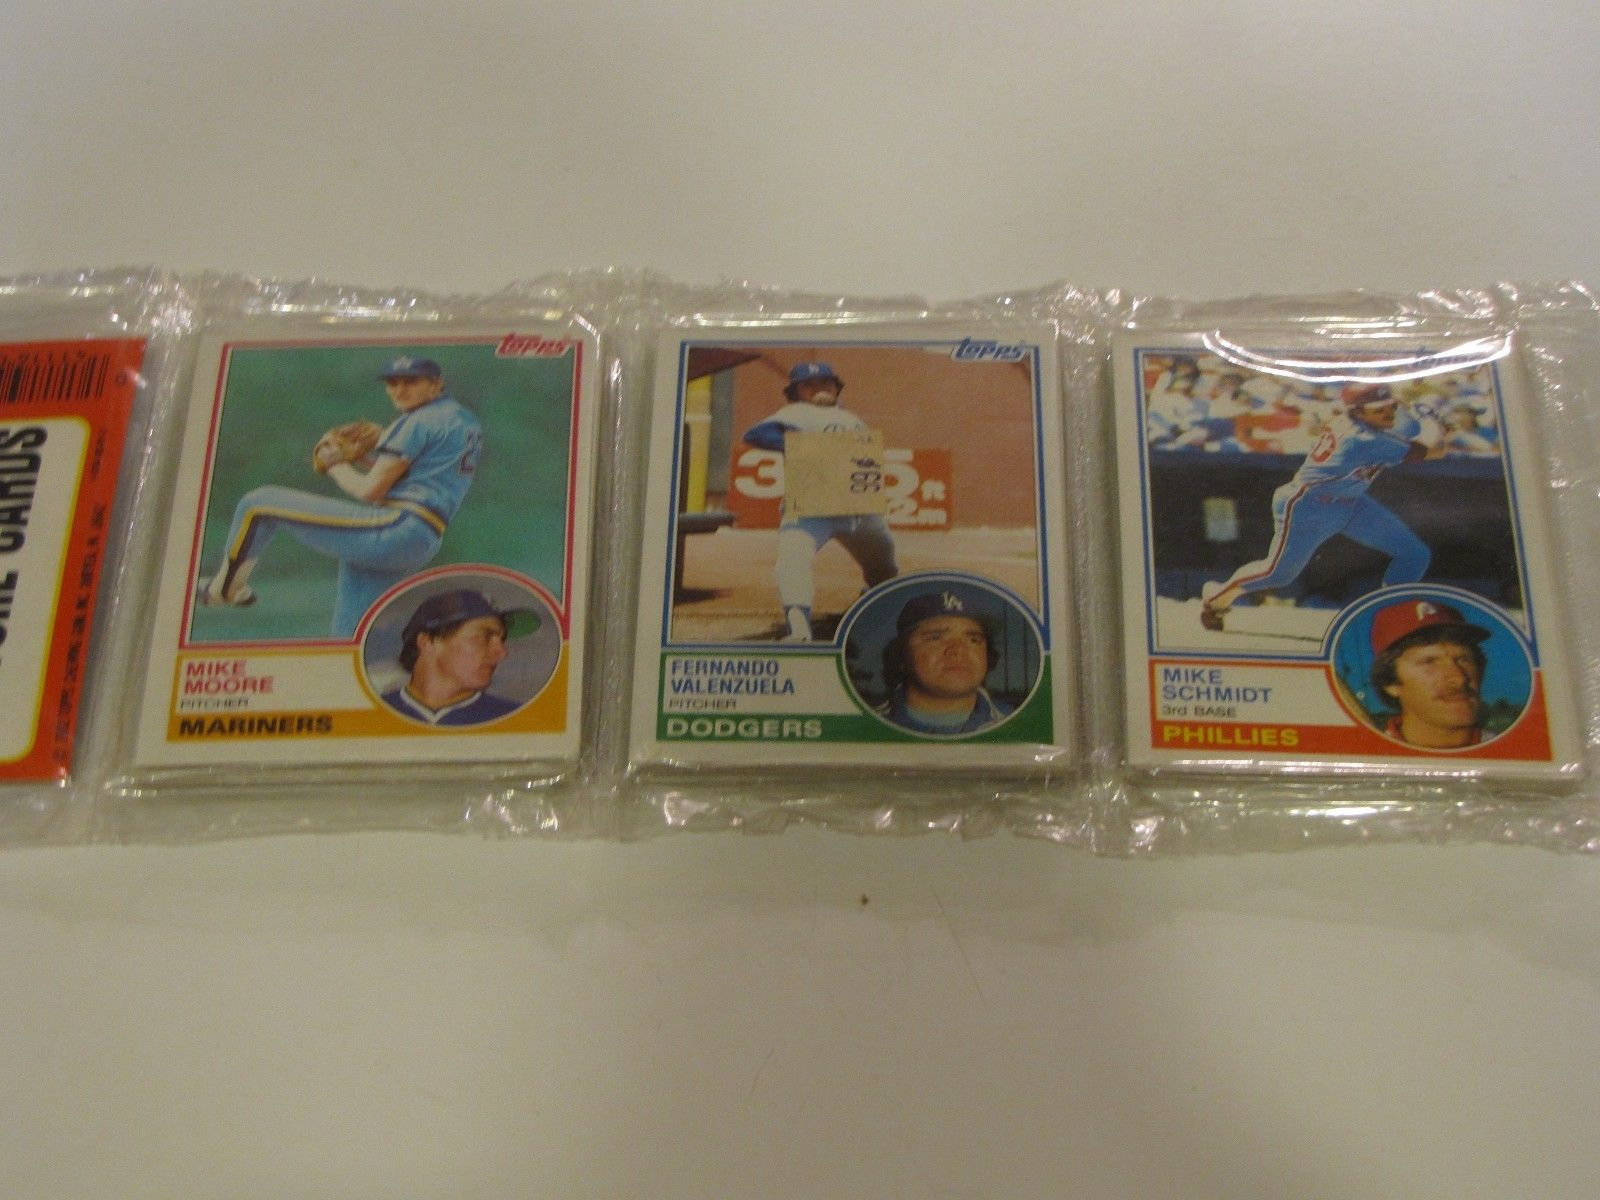 You remember going through these to see if any good cards were on top. You also remember when Fernando Valenzuela was a thing.